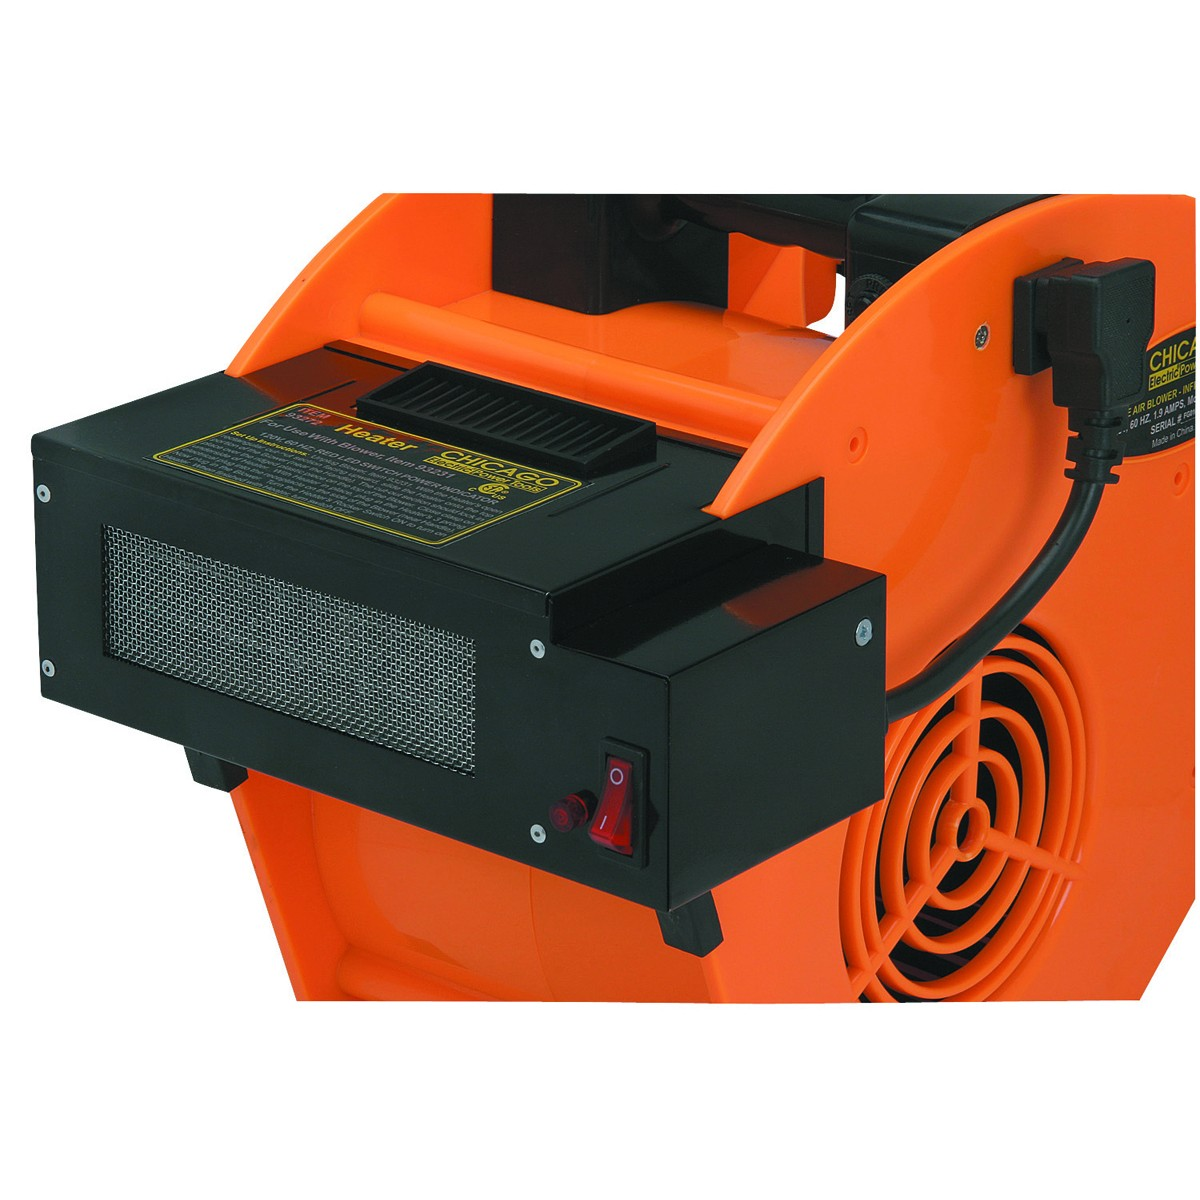 Chicago Electric Power Tools Heater Attachment for Portable Blower Steel 93272